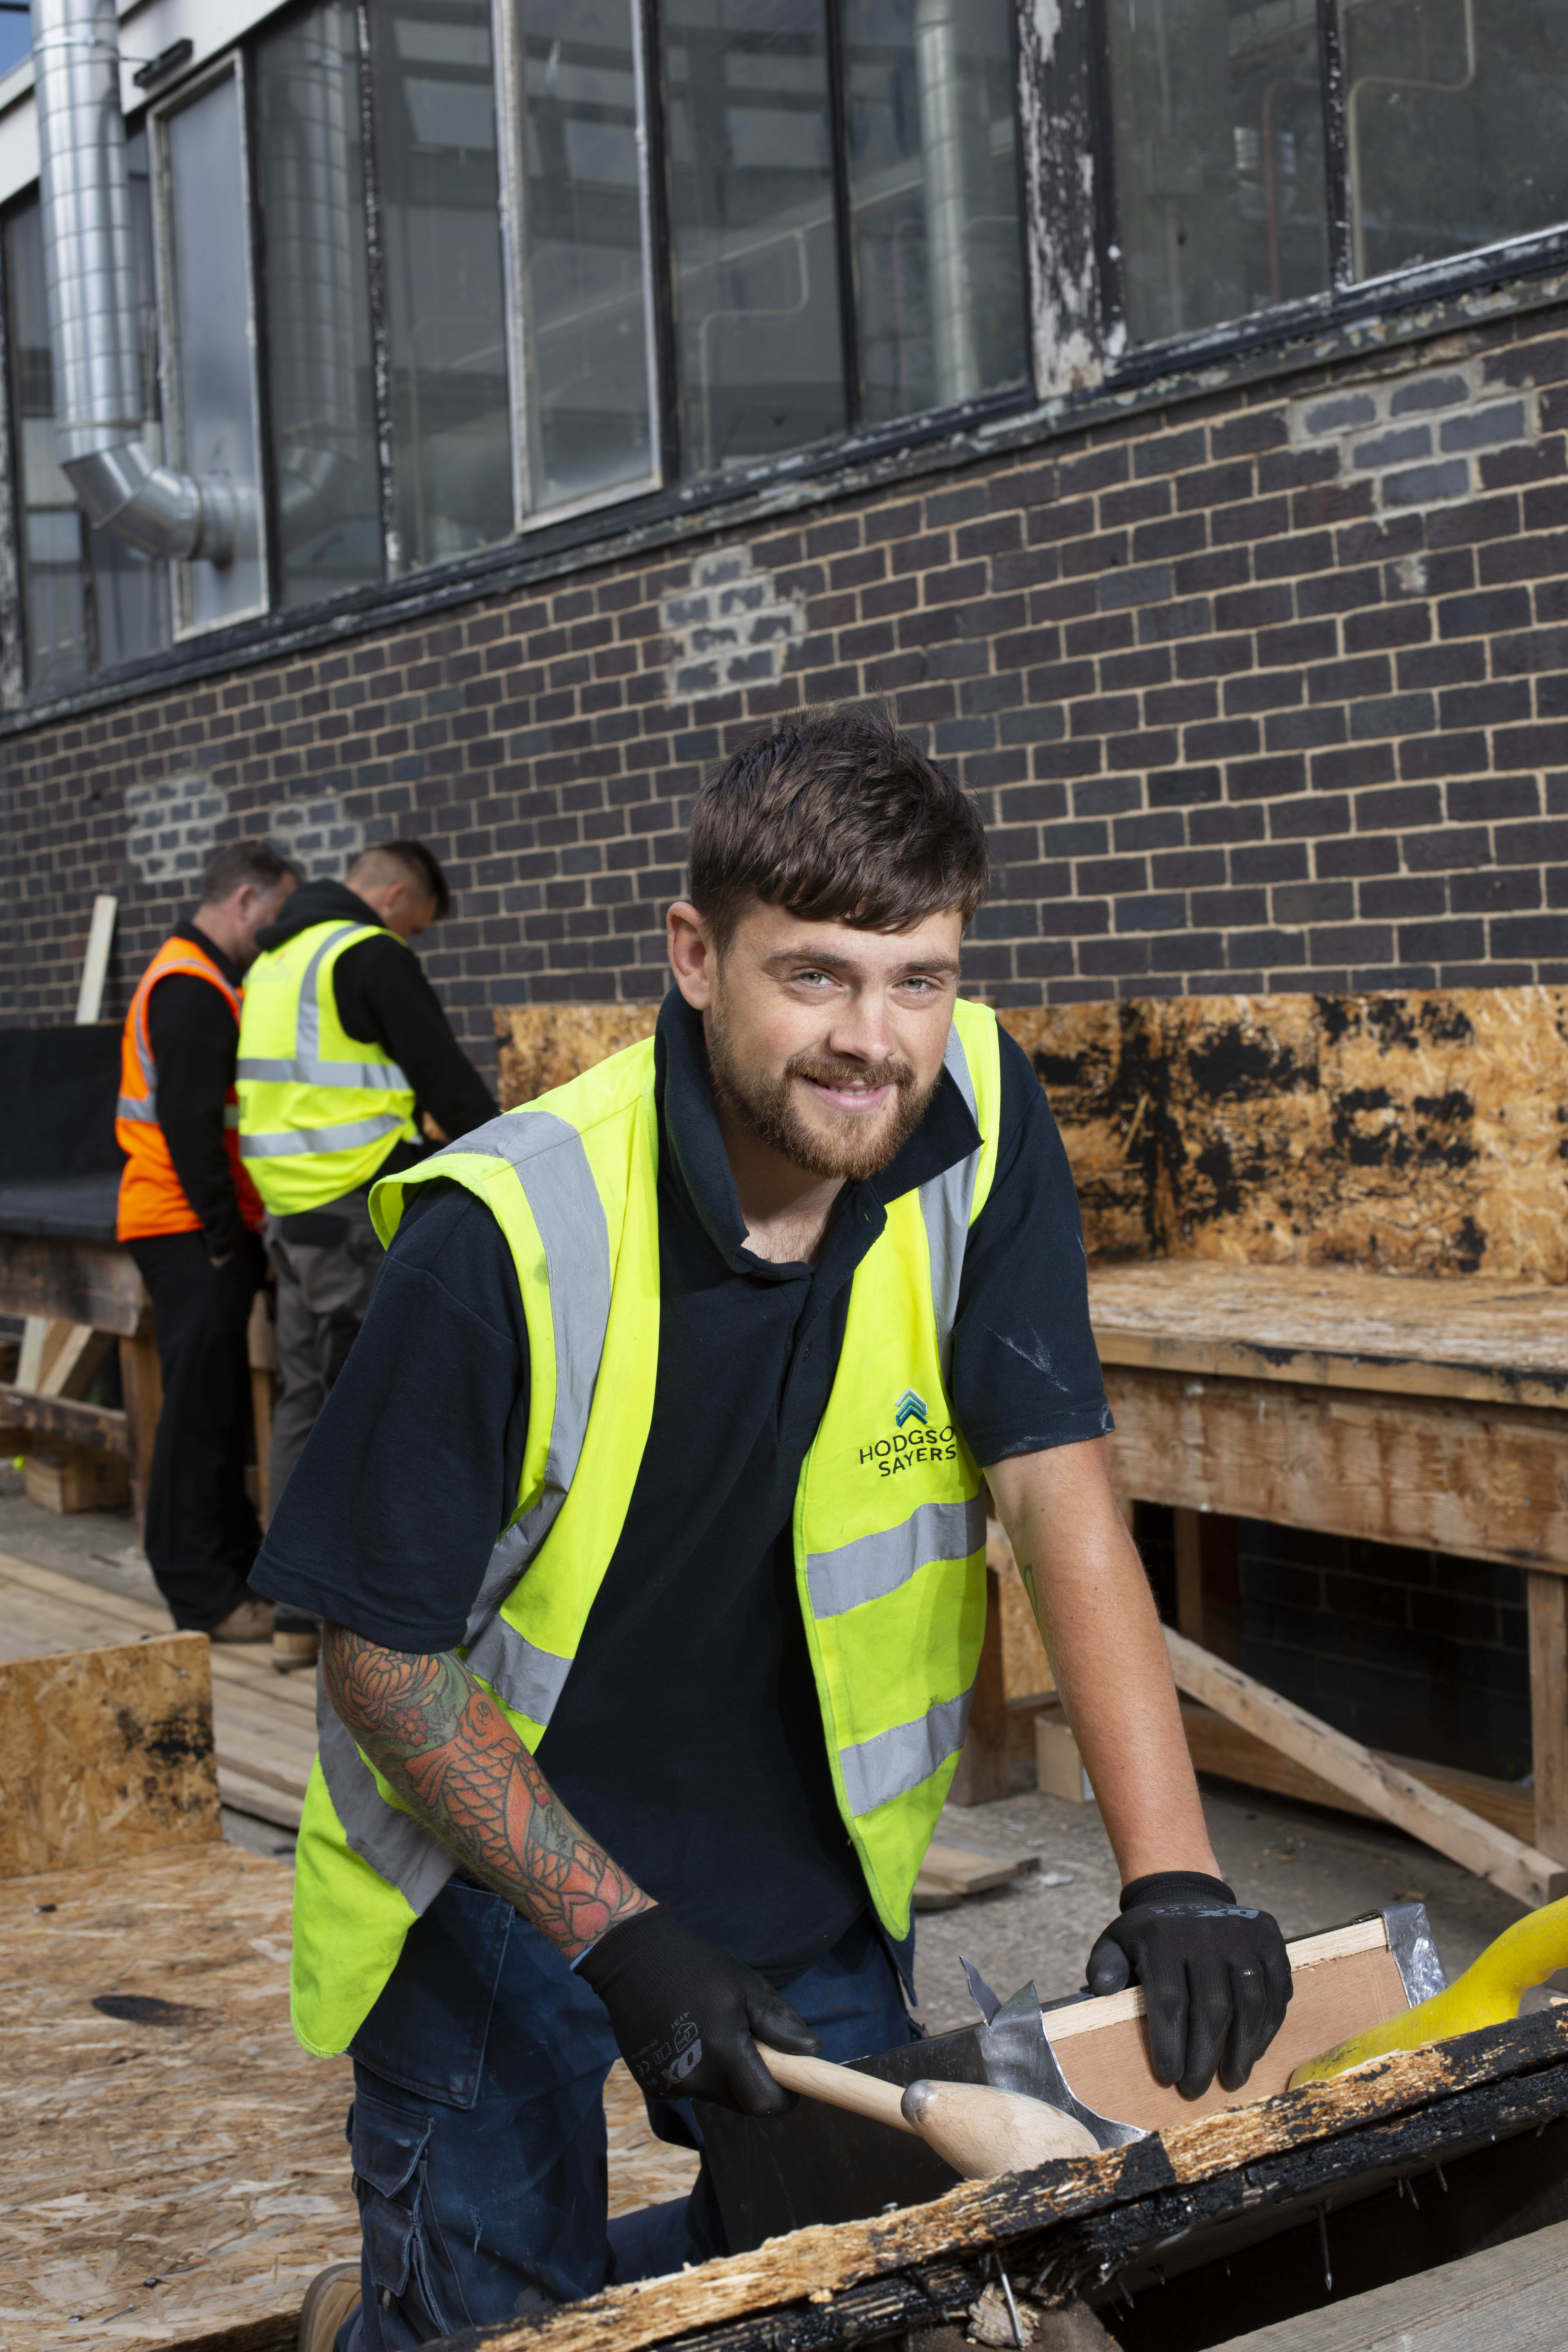 Newcastle Roofing Apprentice Aiming To Win At National